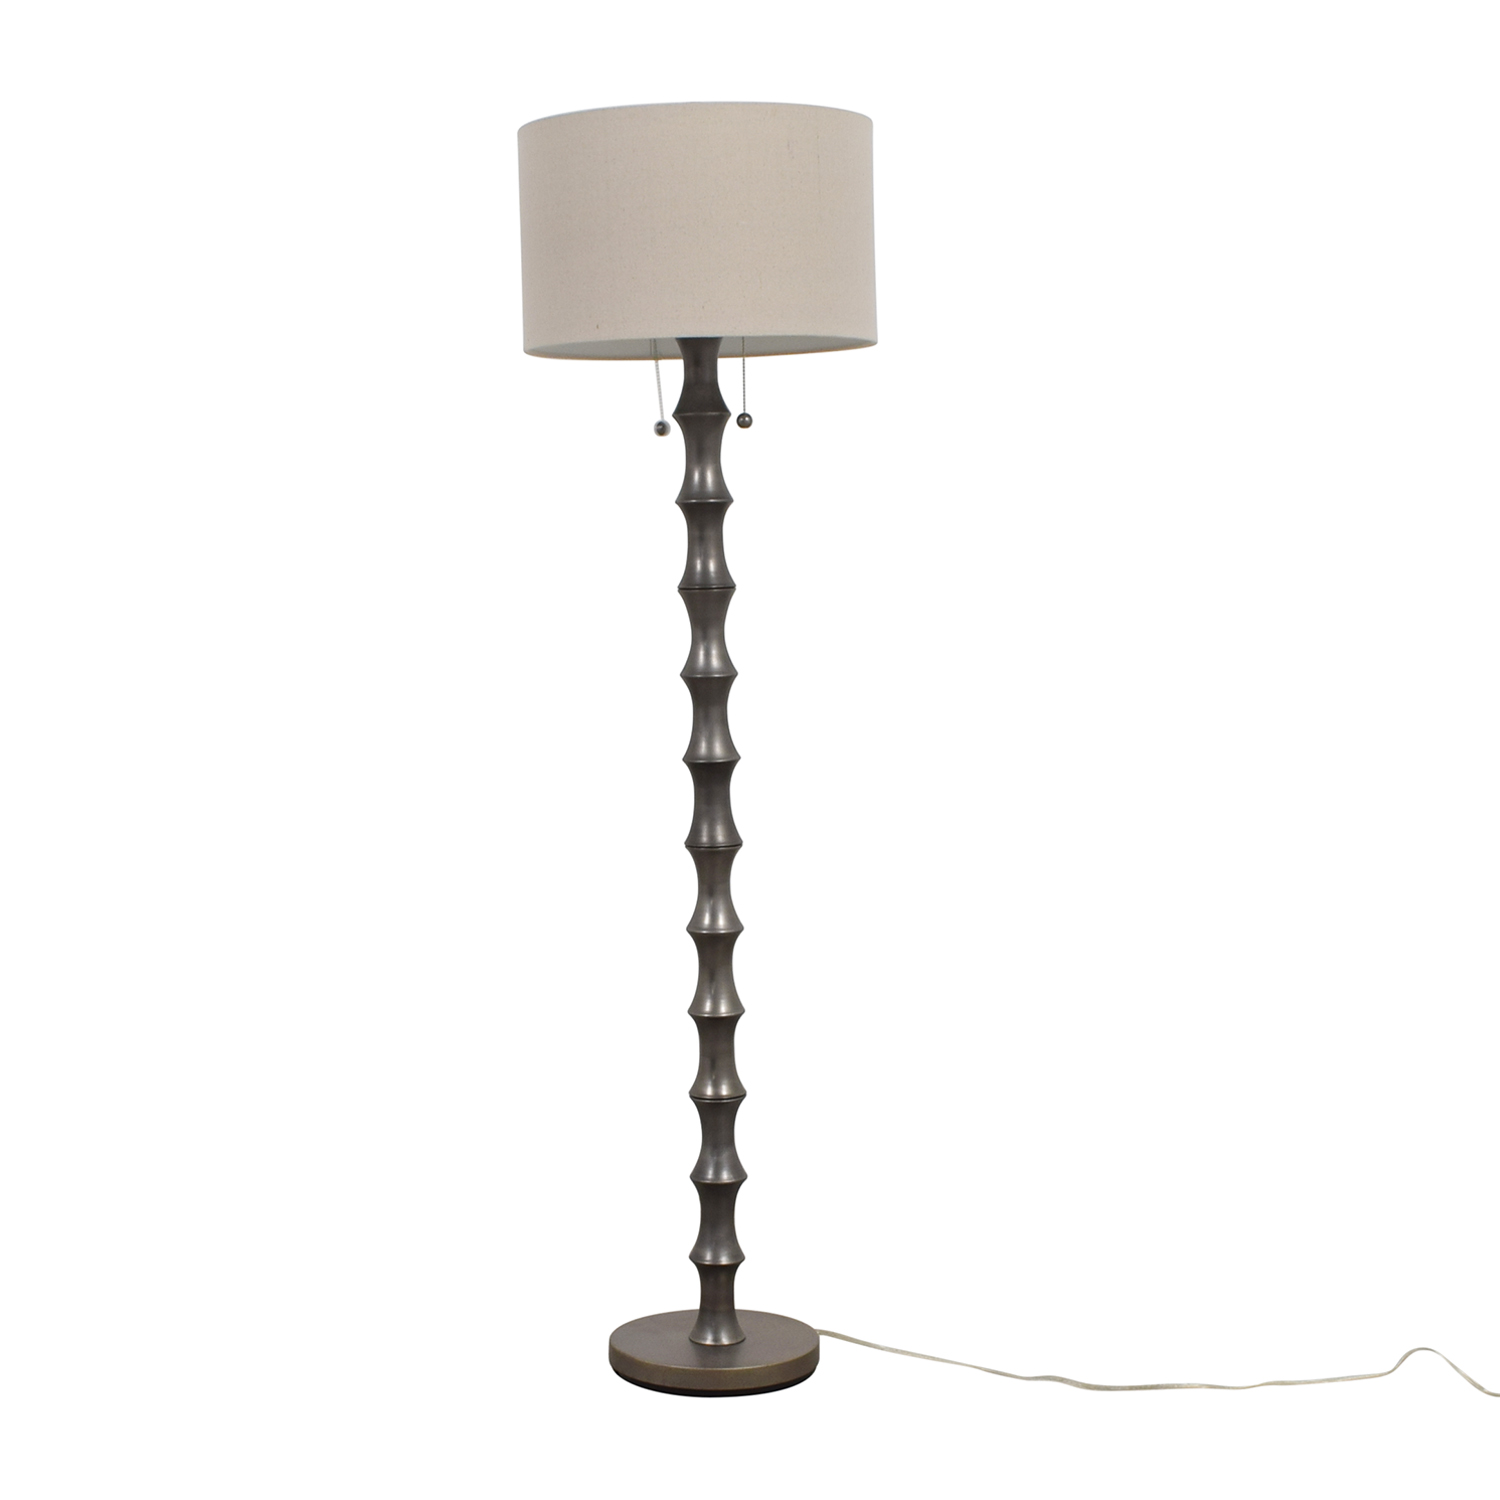 Tan and Silver Floor Lamp second hand